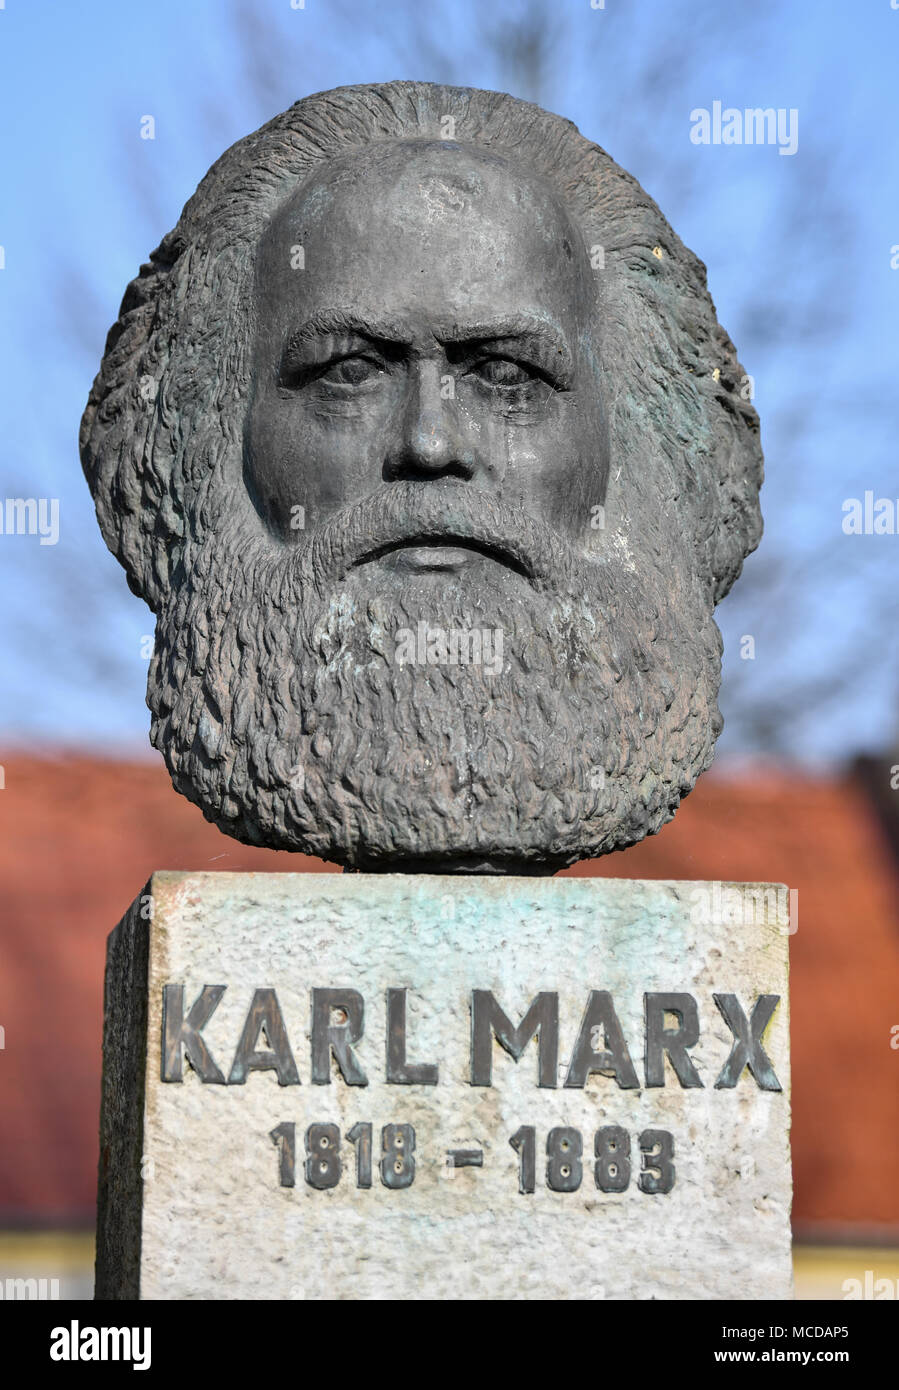 10 April 2018, Germany, Neuhardenberg: A bust of German philosopher, economist and social theorist Karl Marx (May, 05 1818 - March, 14 1883) is on display. The town of Neuhardenberg was previoulsy known as Marxwalde named after Karl Marx during the GDR era. Photo: Patrick Pleul/dpa-Zentralbild/dpa Stock Photo